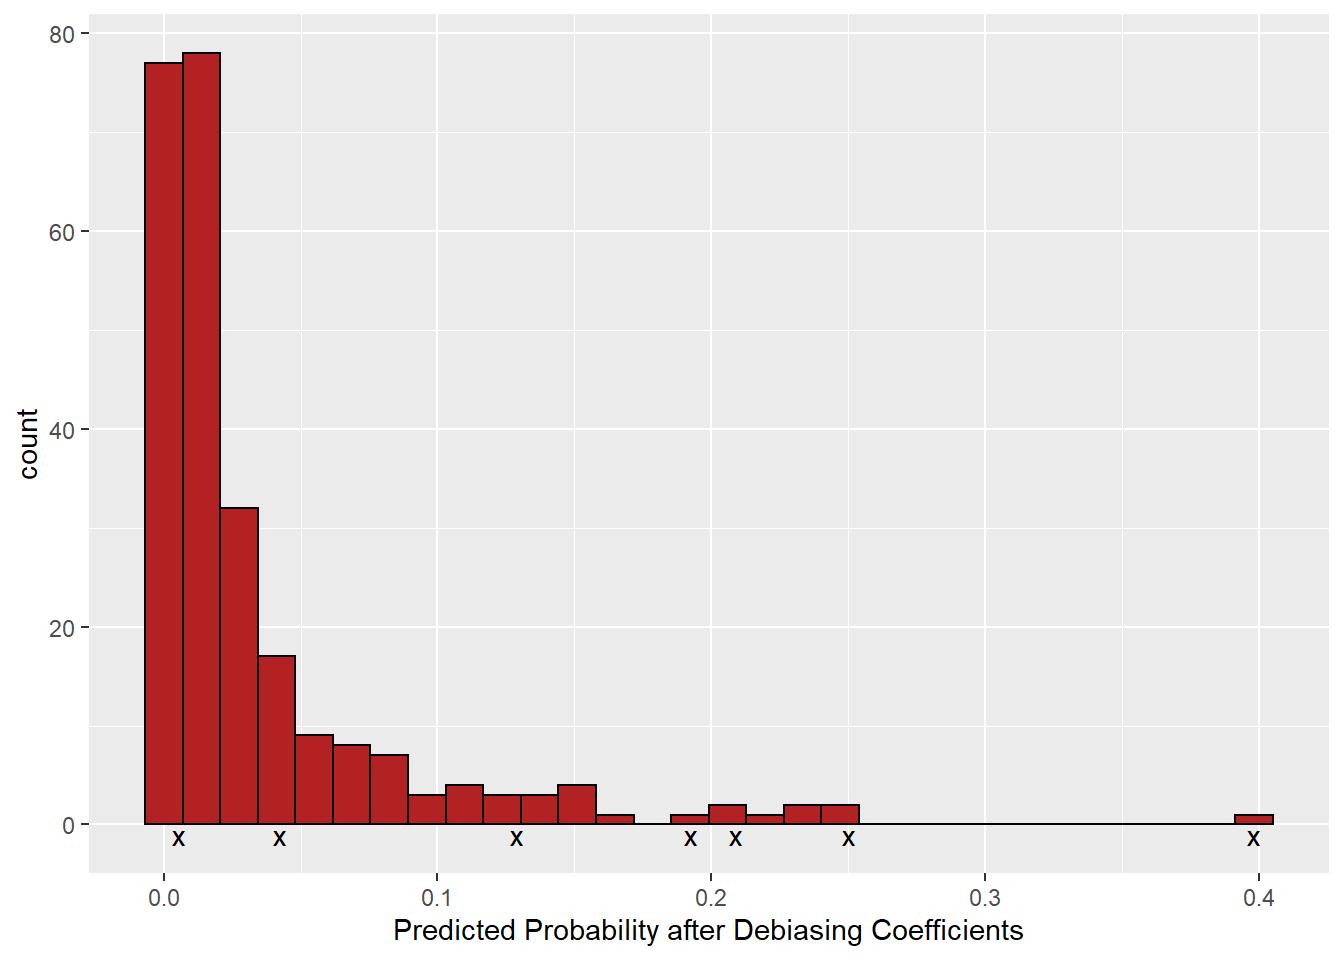 Predicted probability after debiasing coefficients